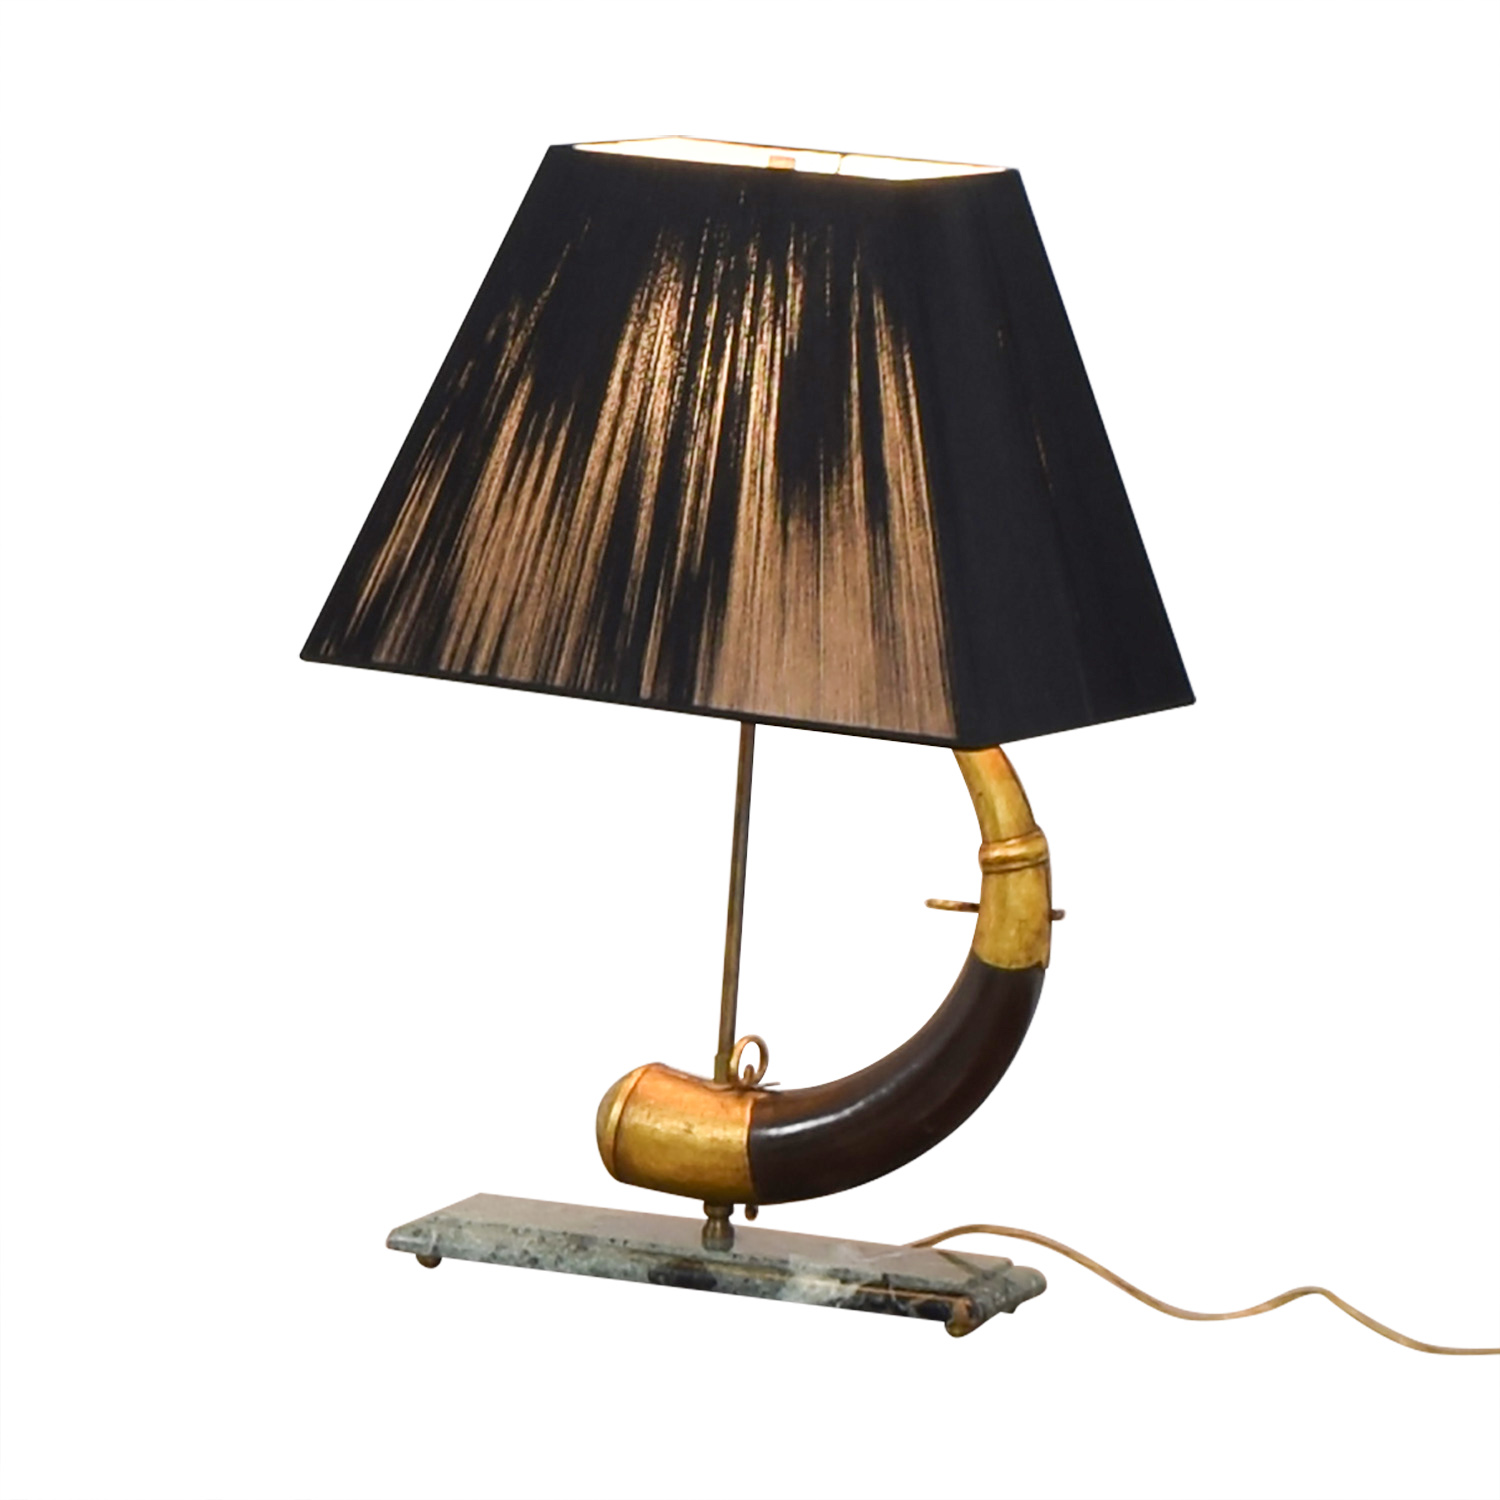 Horn Desk Lamp / Lamps